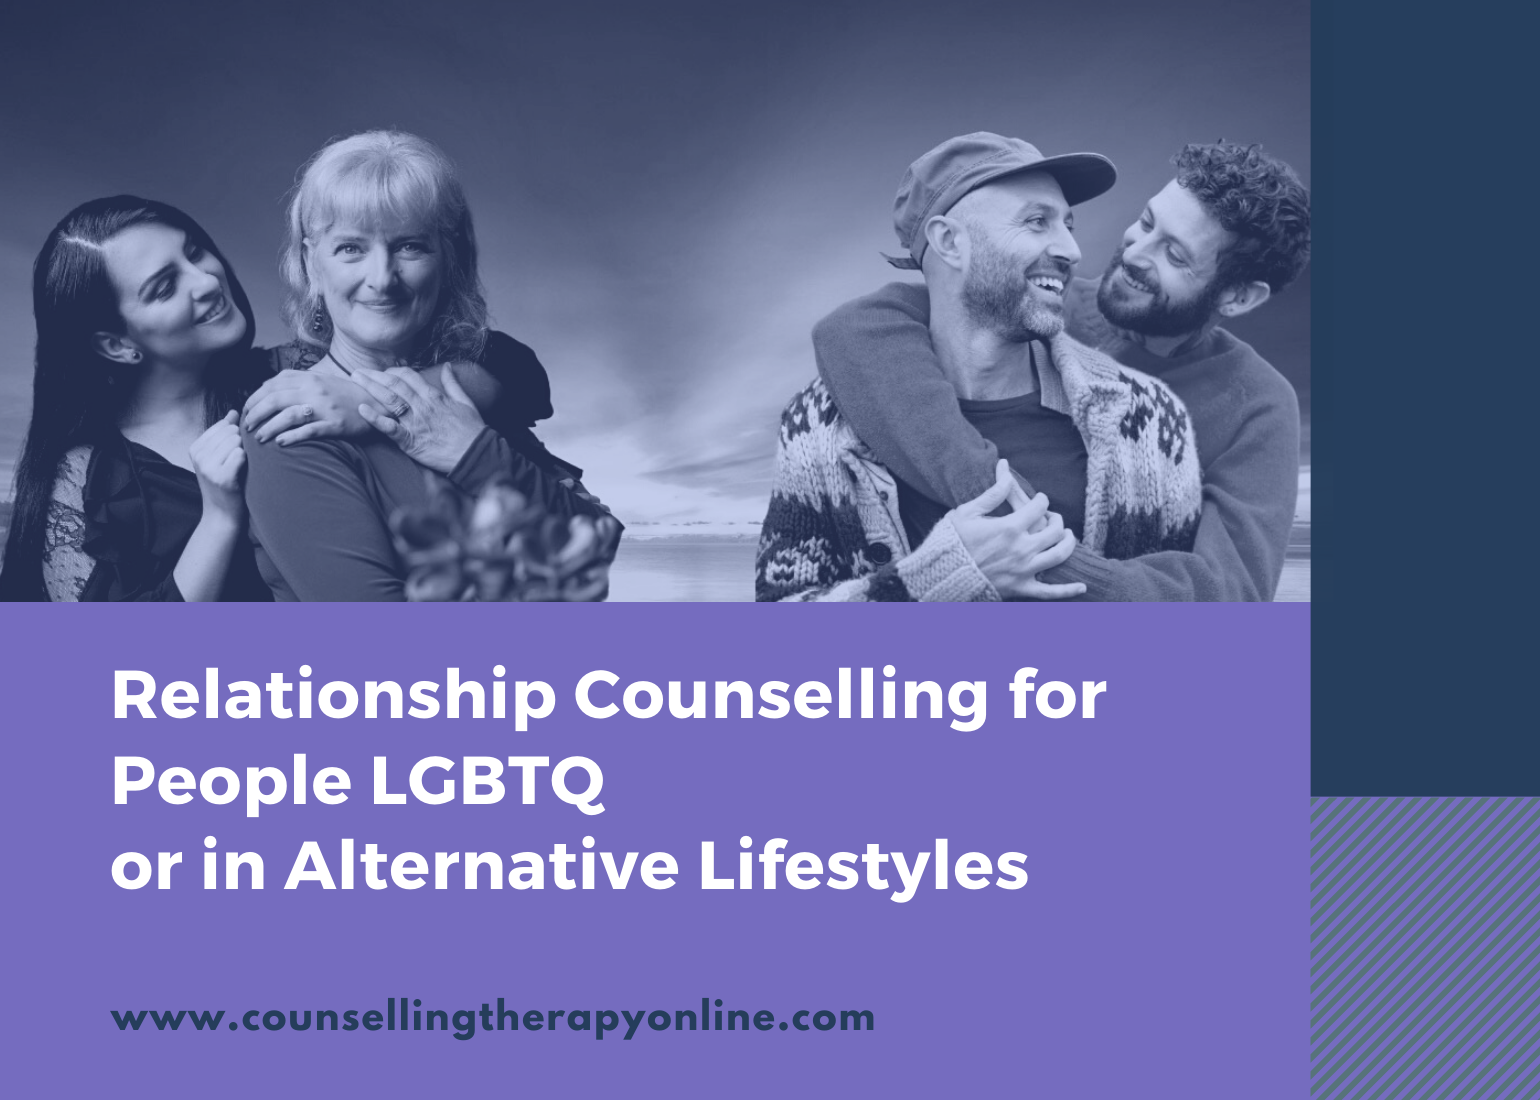 Online Relationship counselling therapy for LGBTQ